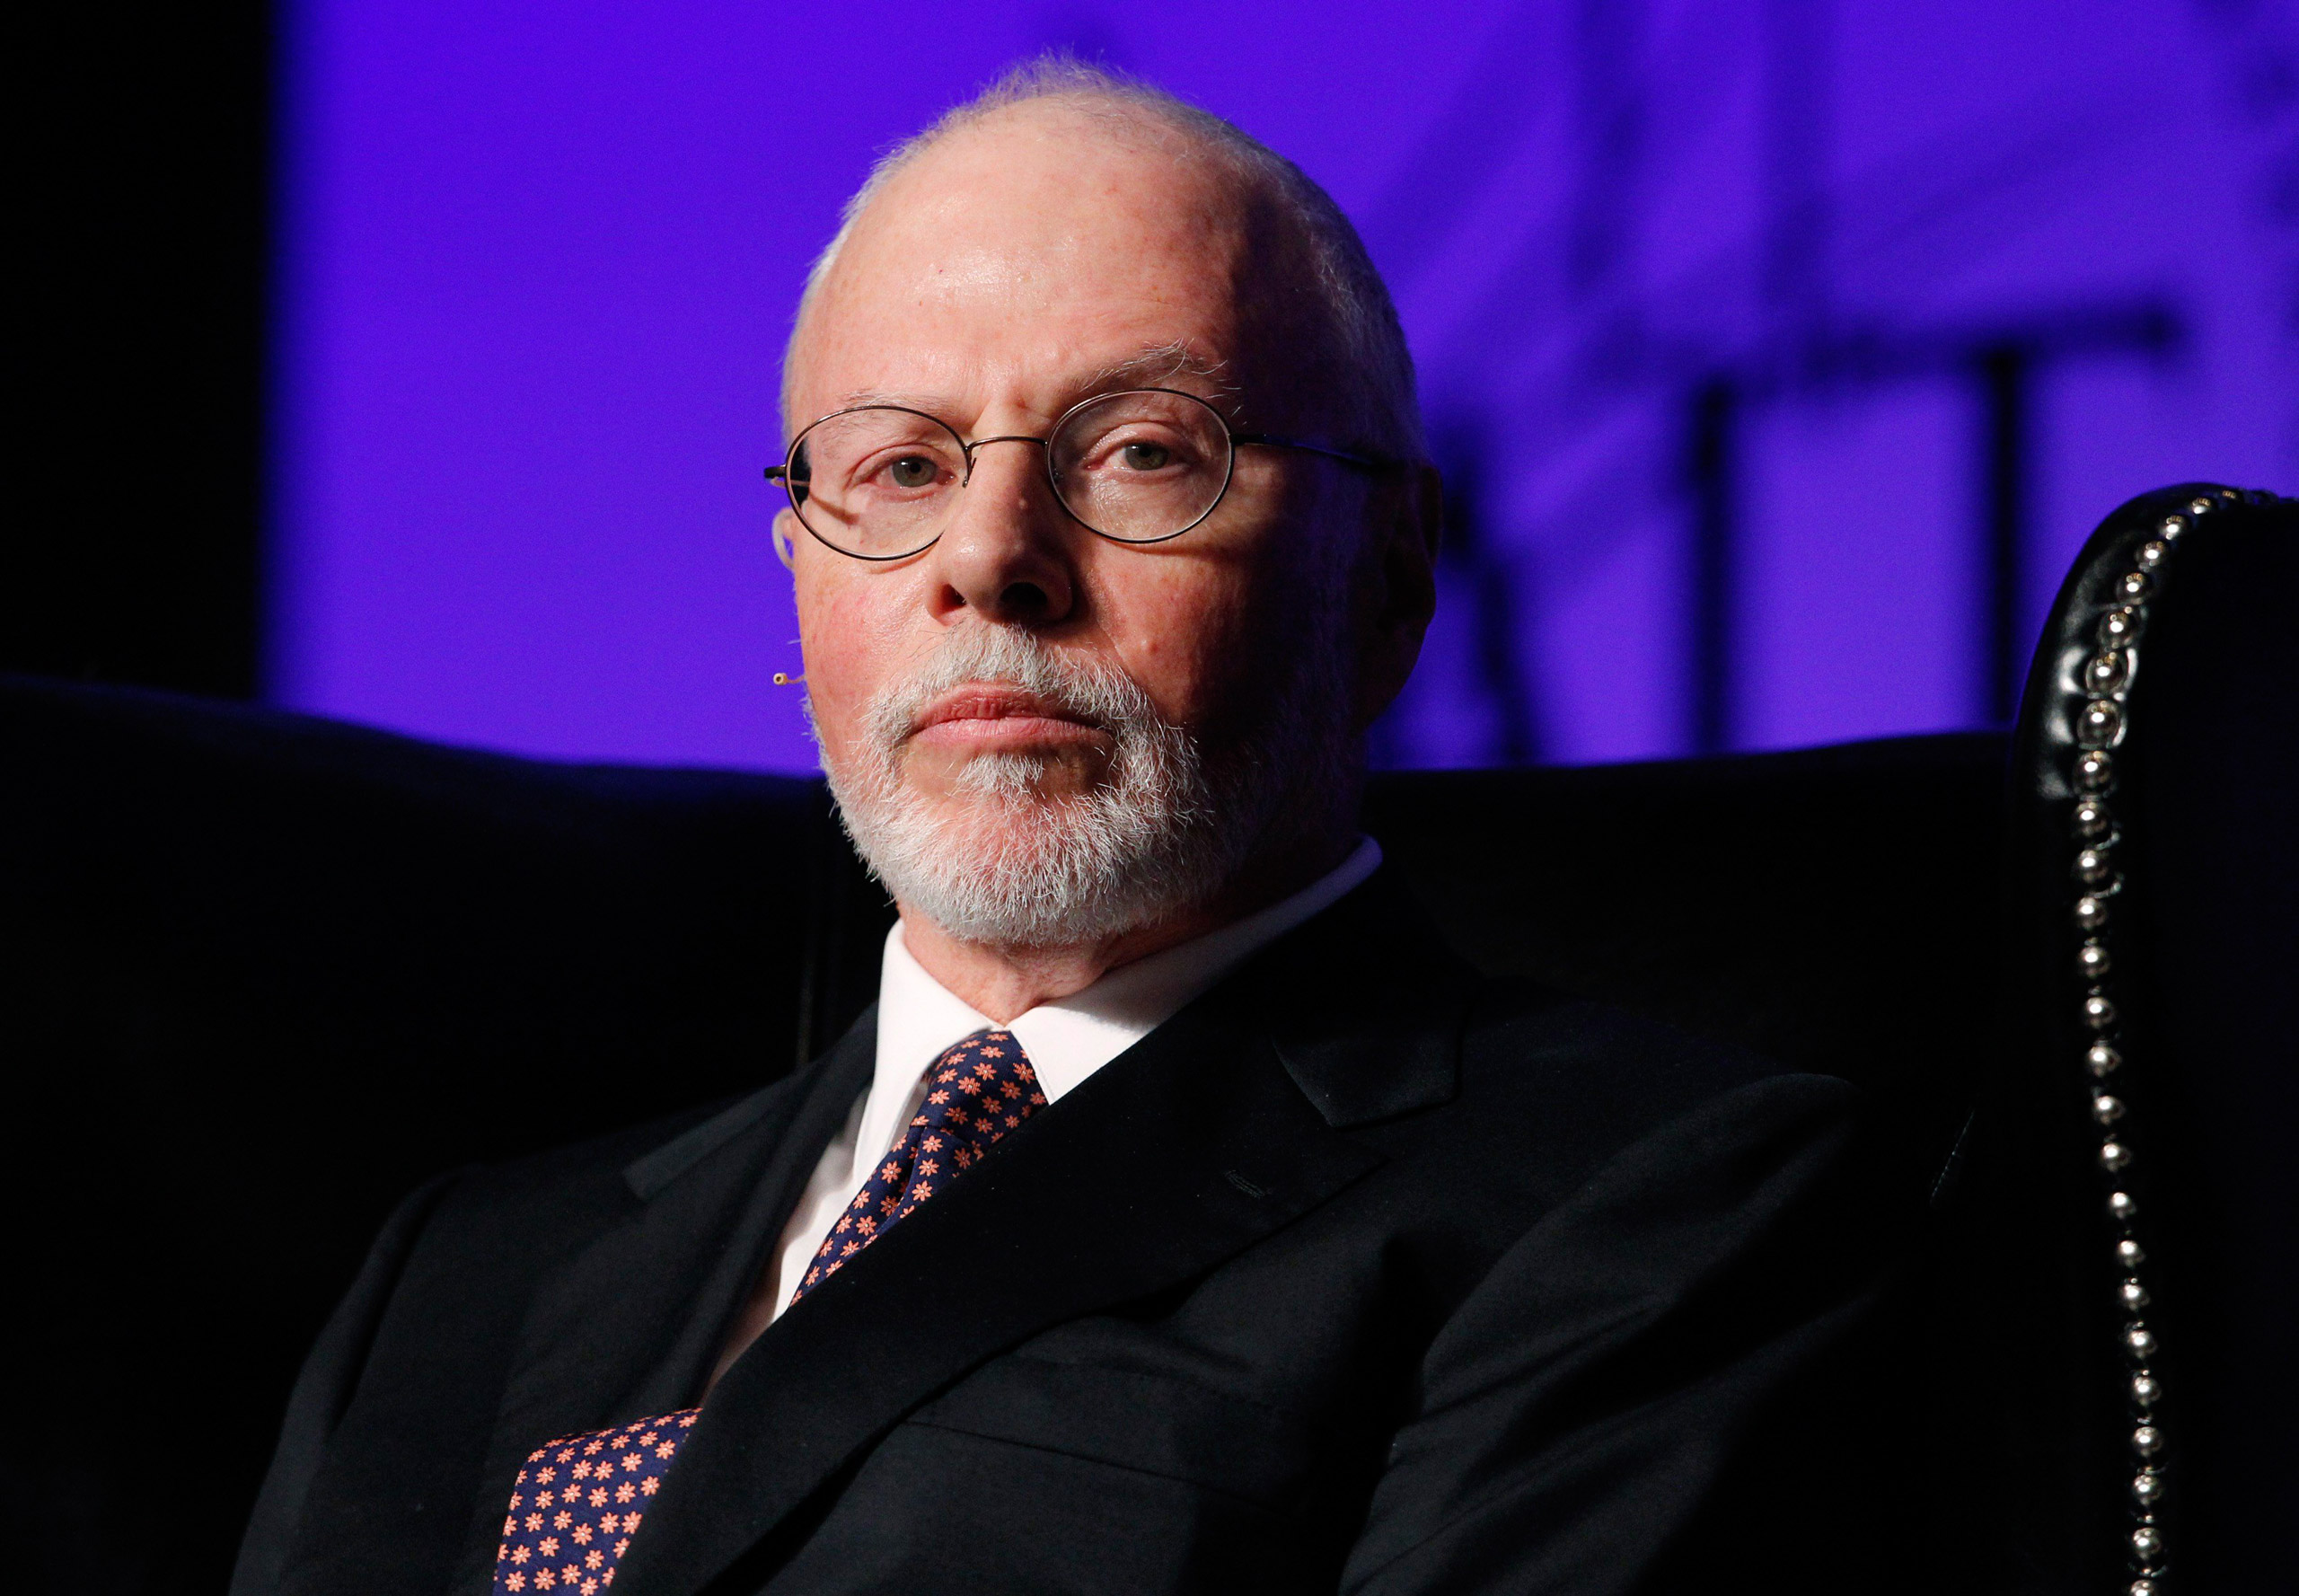 Paul Singer, founder, CEO, and co-chief investment officer for Elliott Management Corporation, attends the Skybridge Alternatives (SALT) Conference in Las Vegas on May 9, 2012.